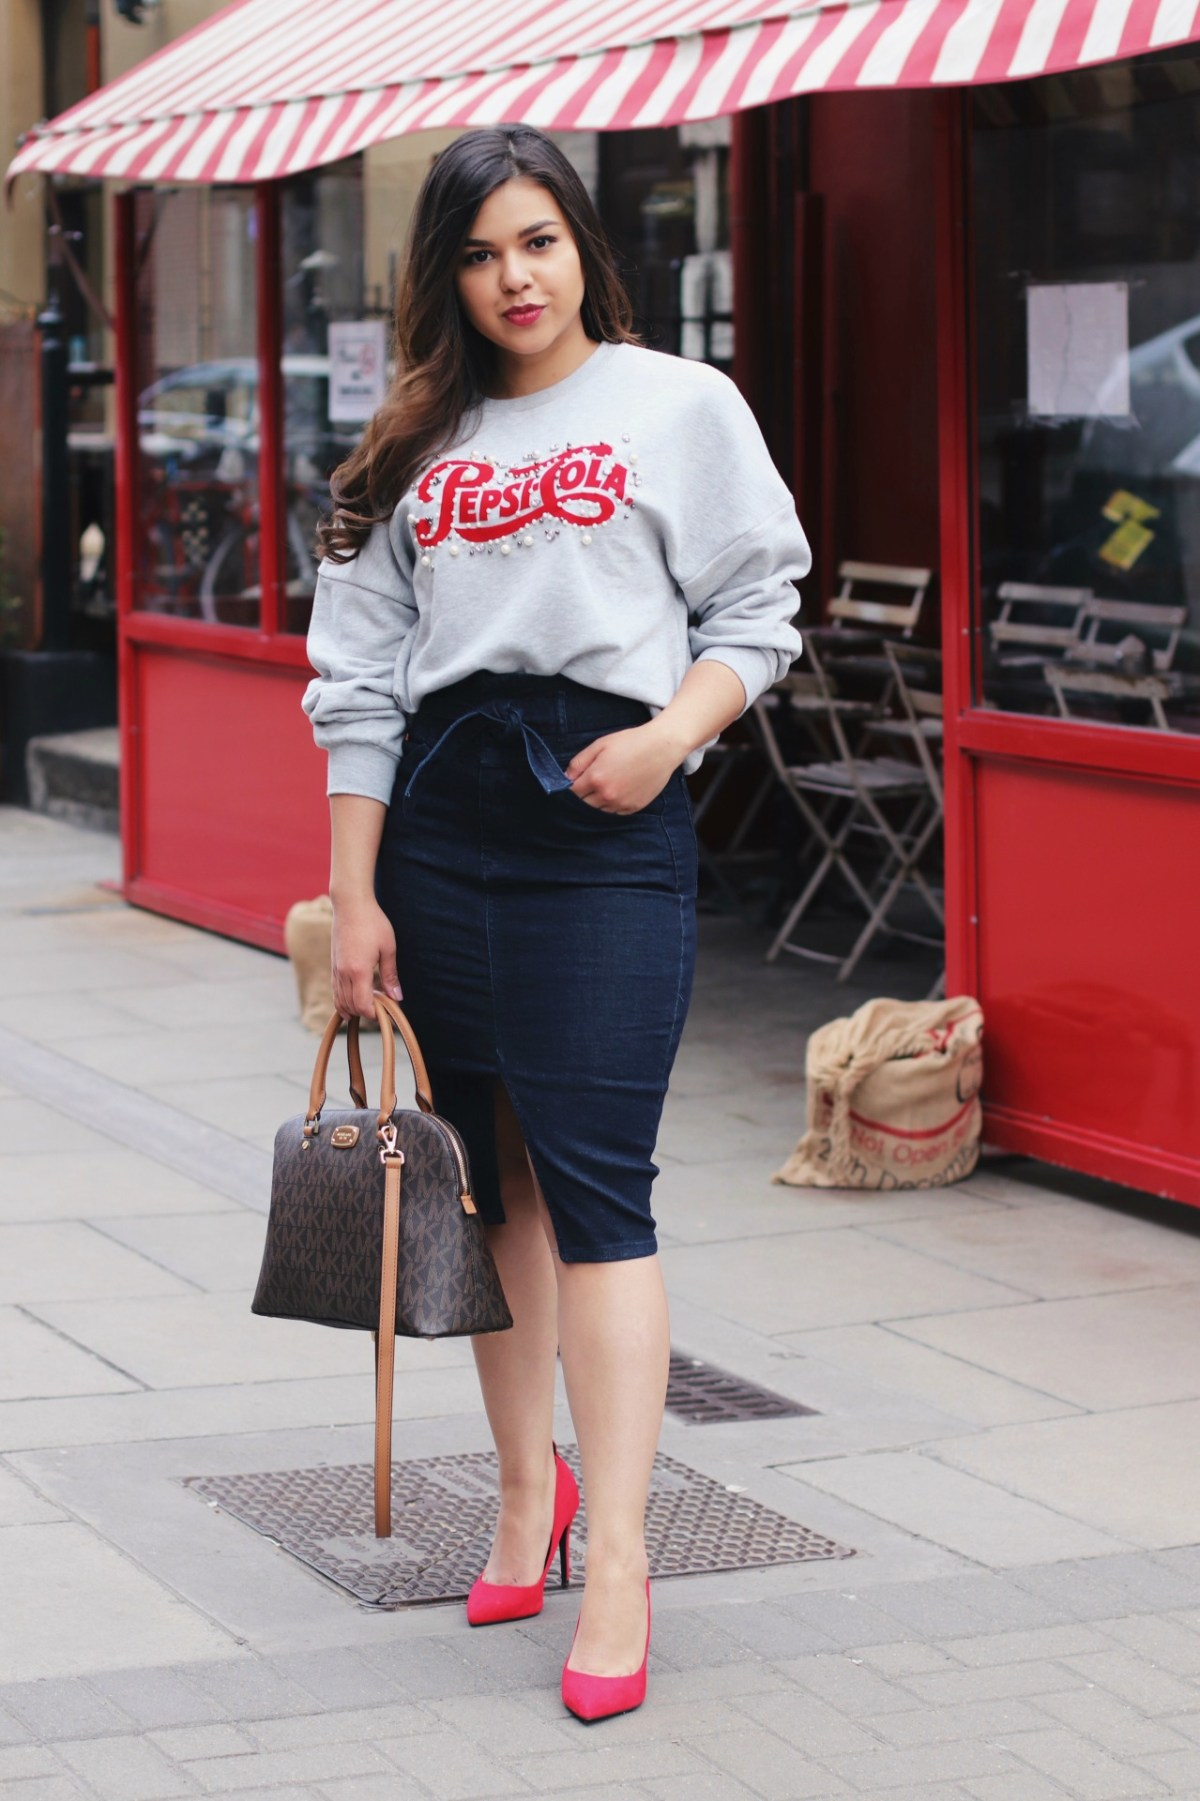 Pencil skirt sweater outfit